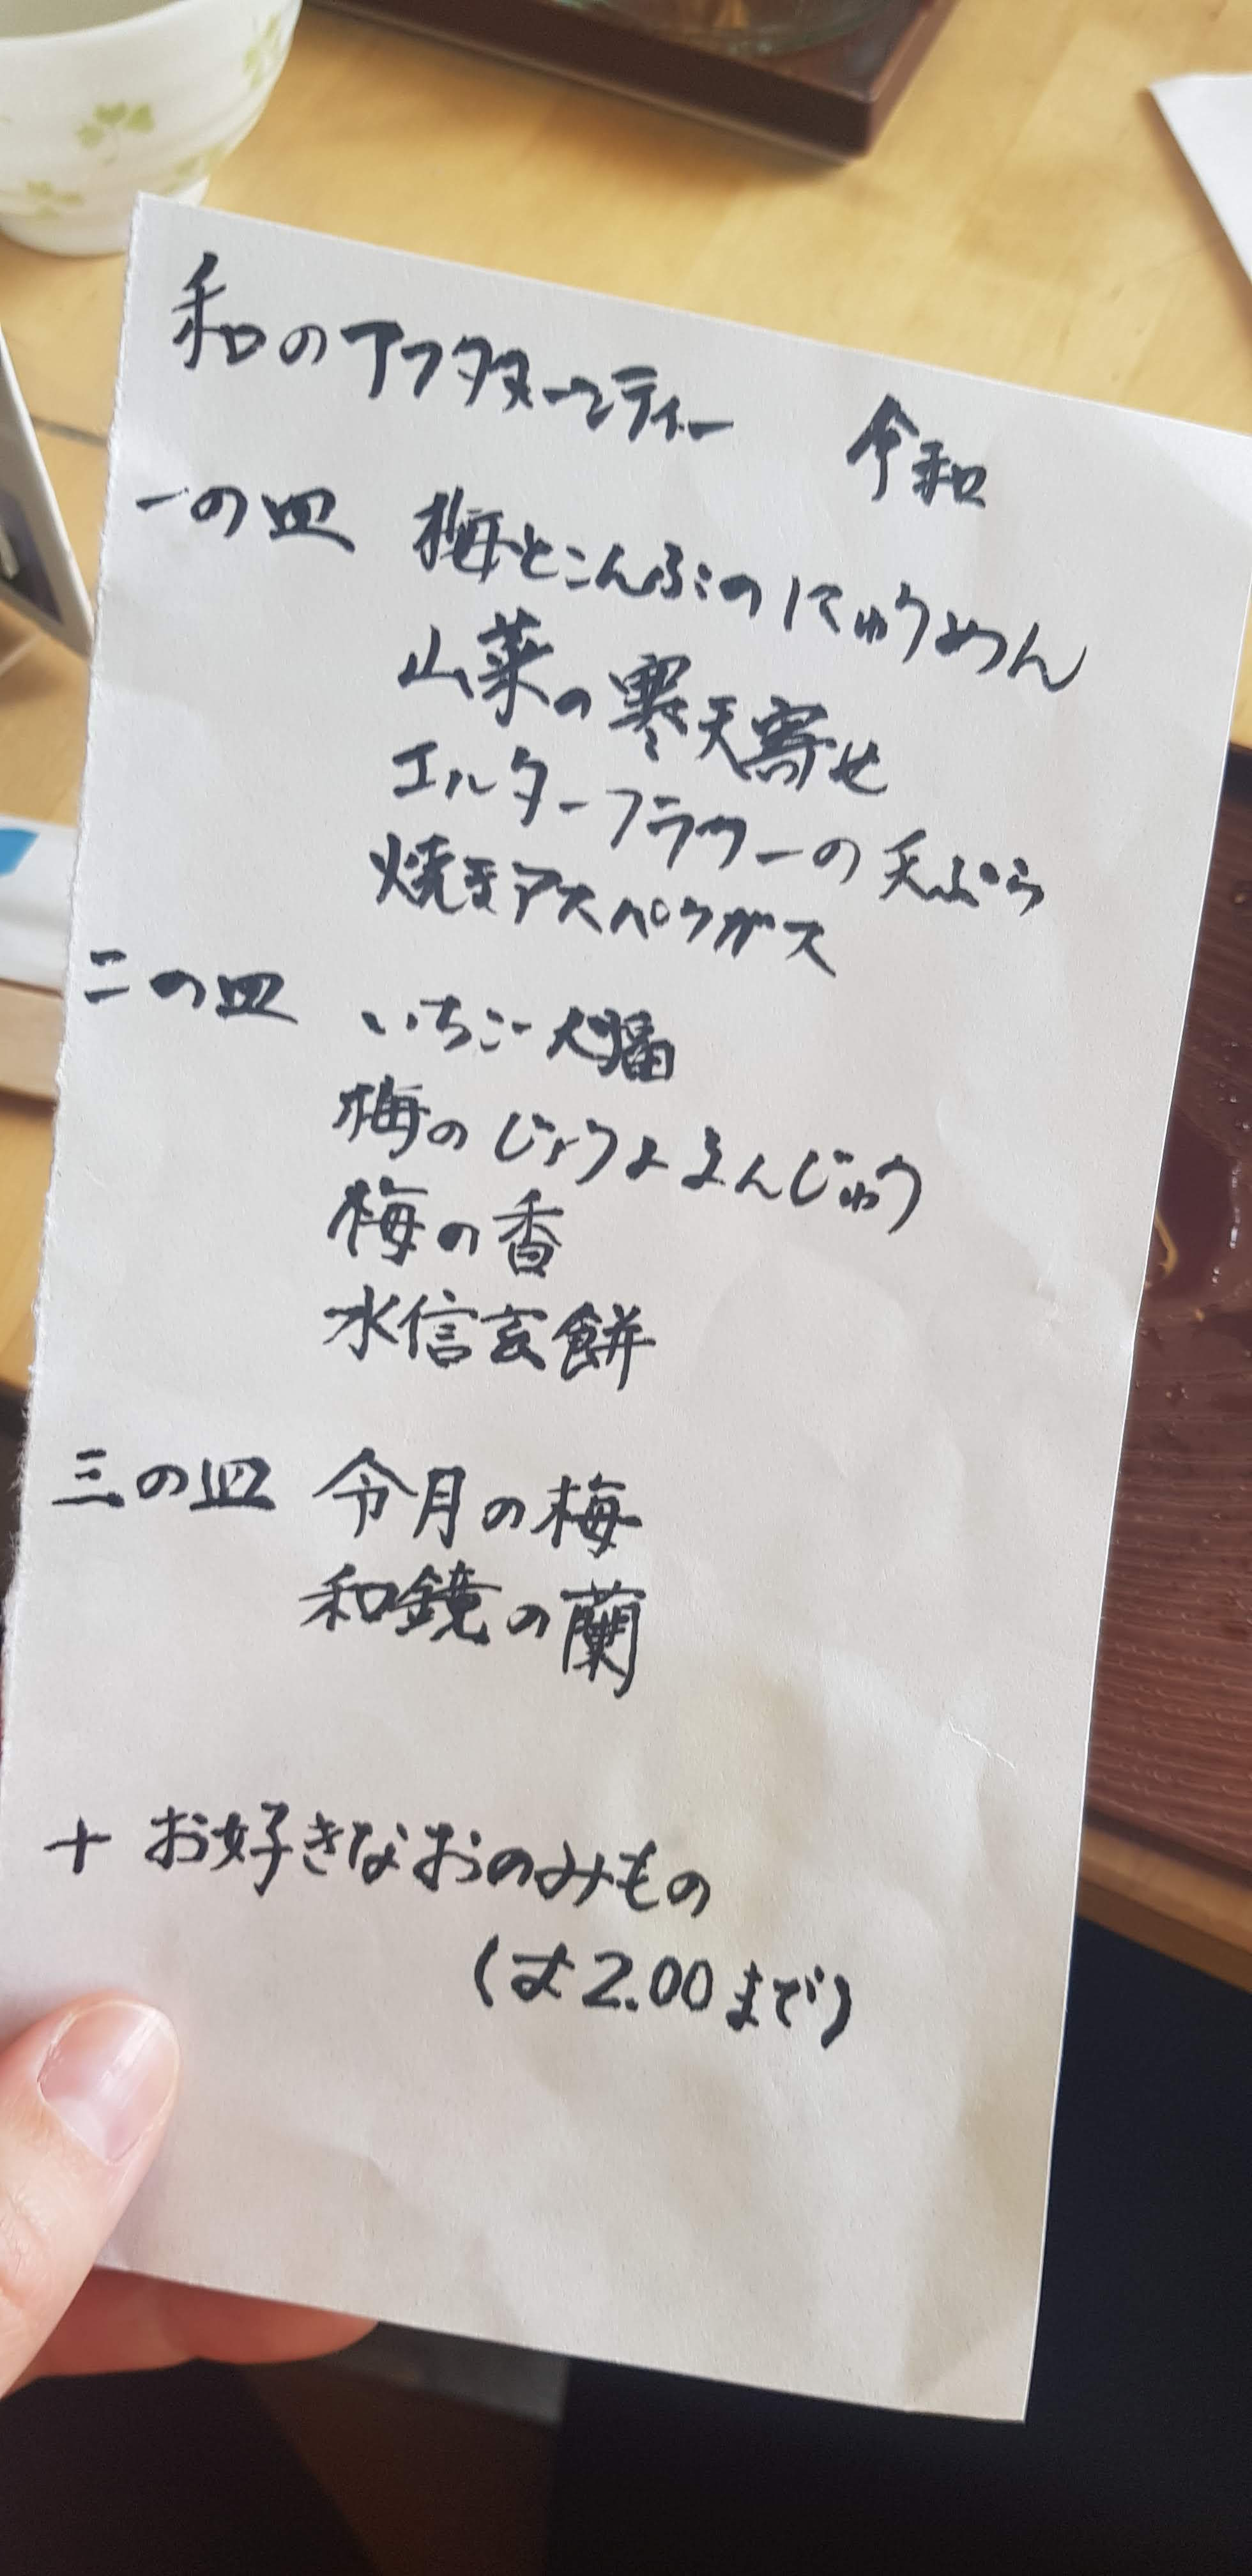 Step Up Japanese Japanese Lessons in Brighton Cafe an an Fran Wrigley 2019 3.jpg